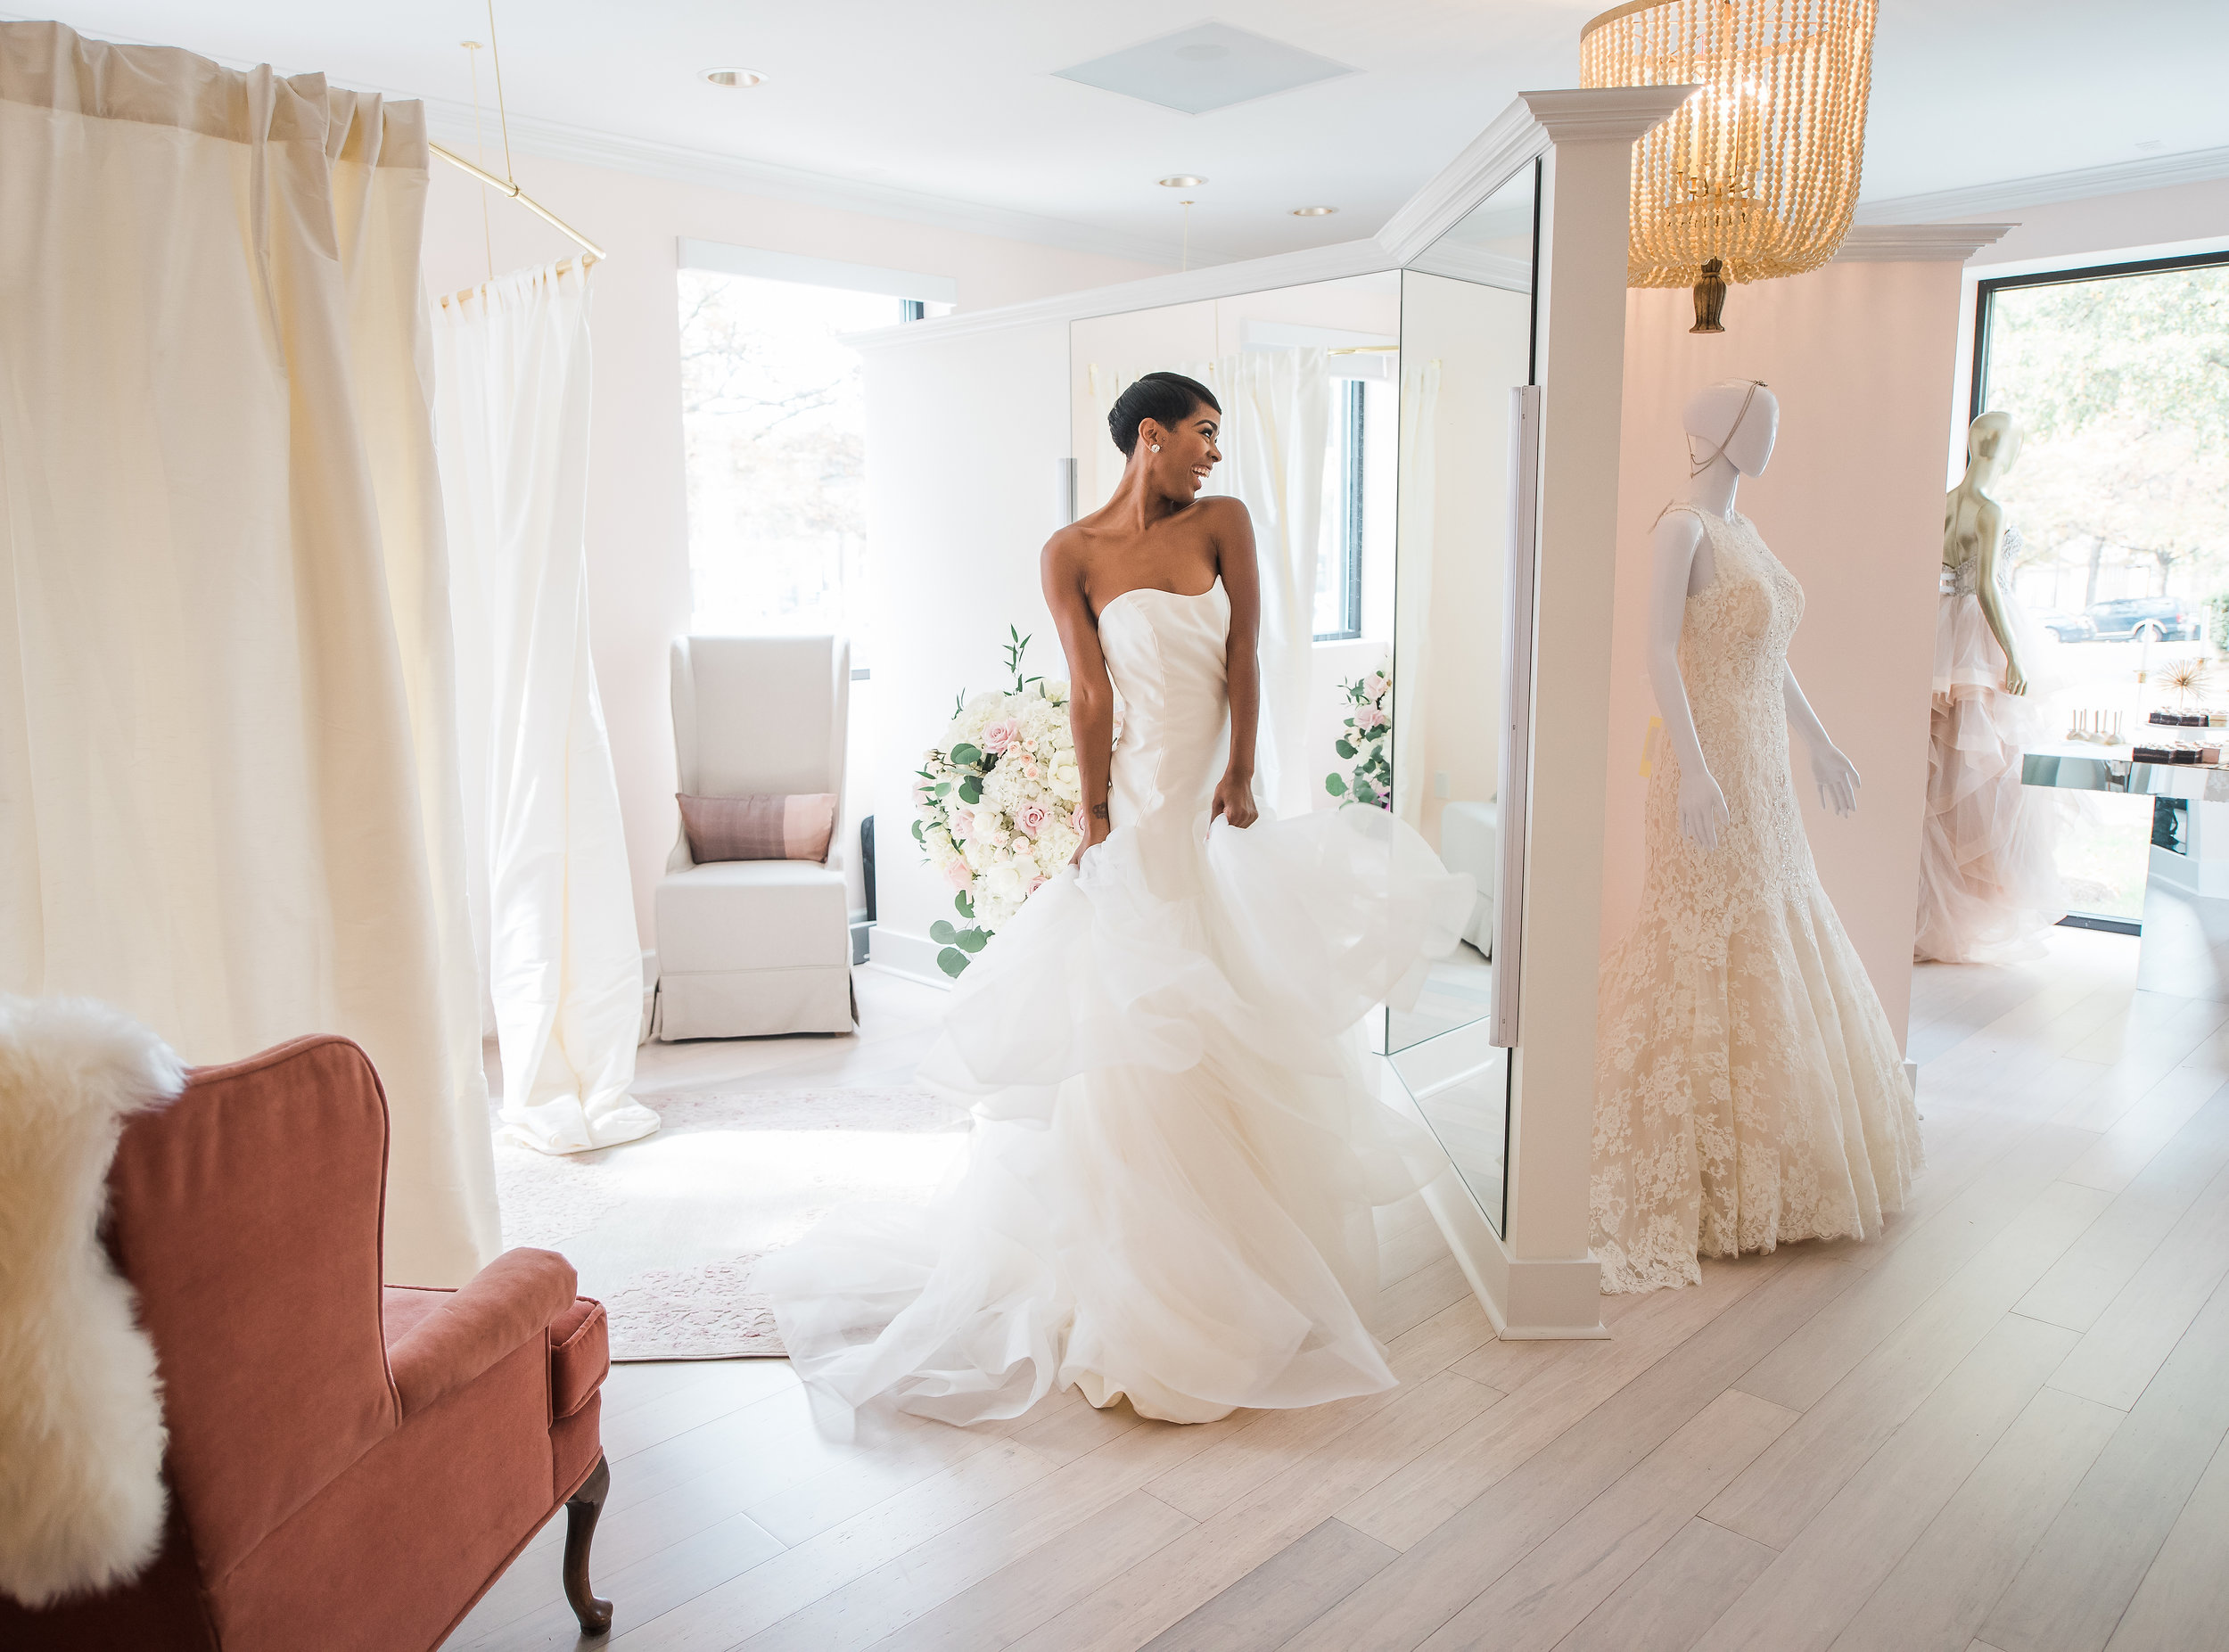 An intimate Bridal Boutique near Washington DC, MD and VA